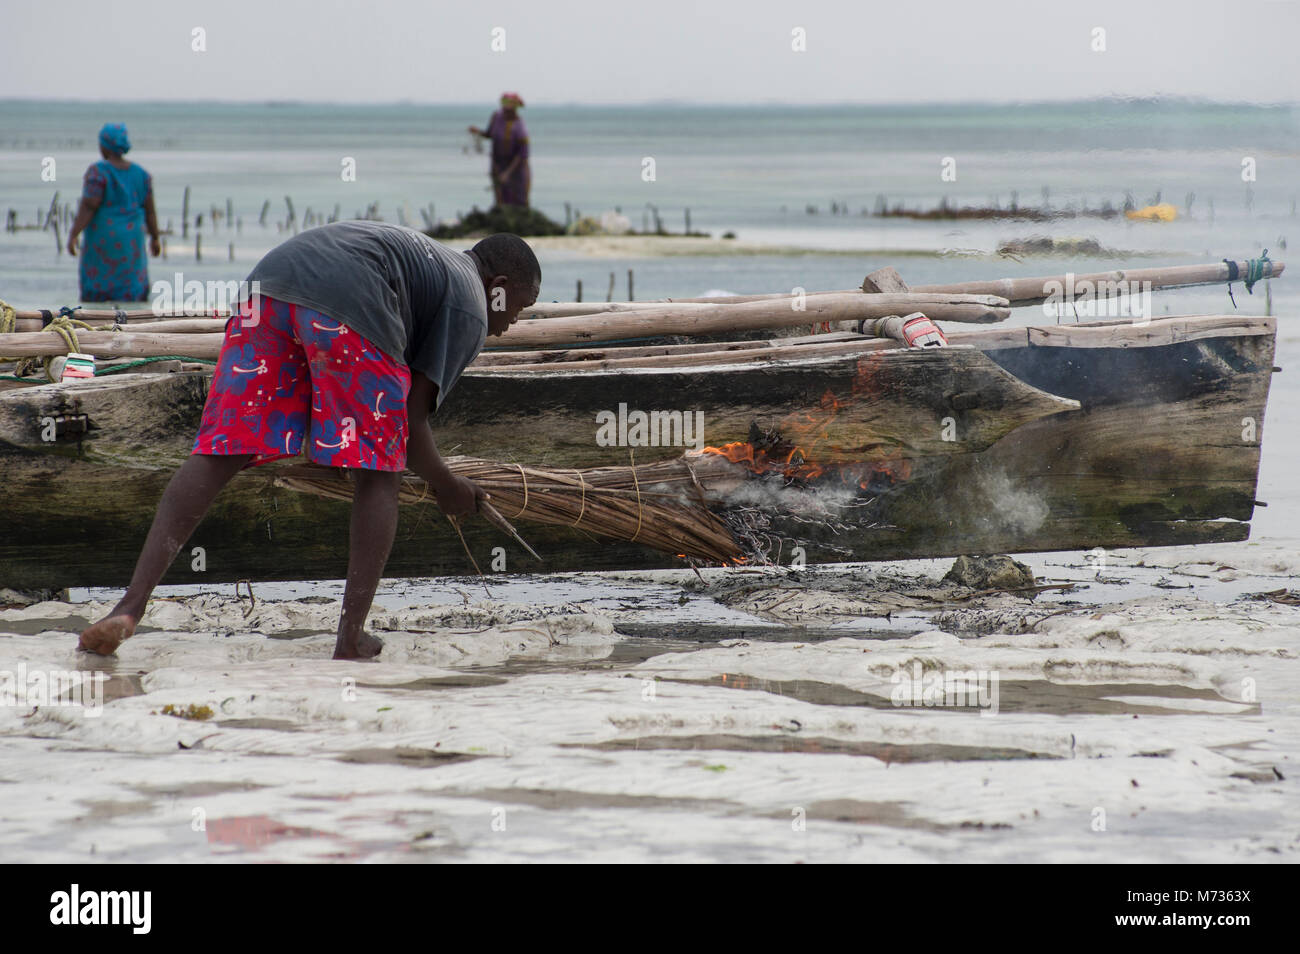 Fisherman using burning palm fronds to remove moss and green grassy growths from the side of his fishing vessel - Stock Image